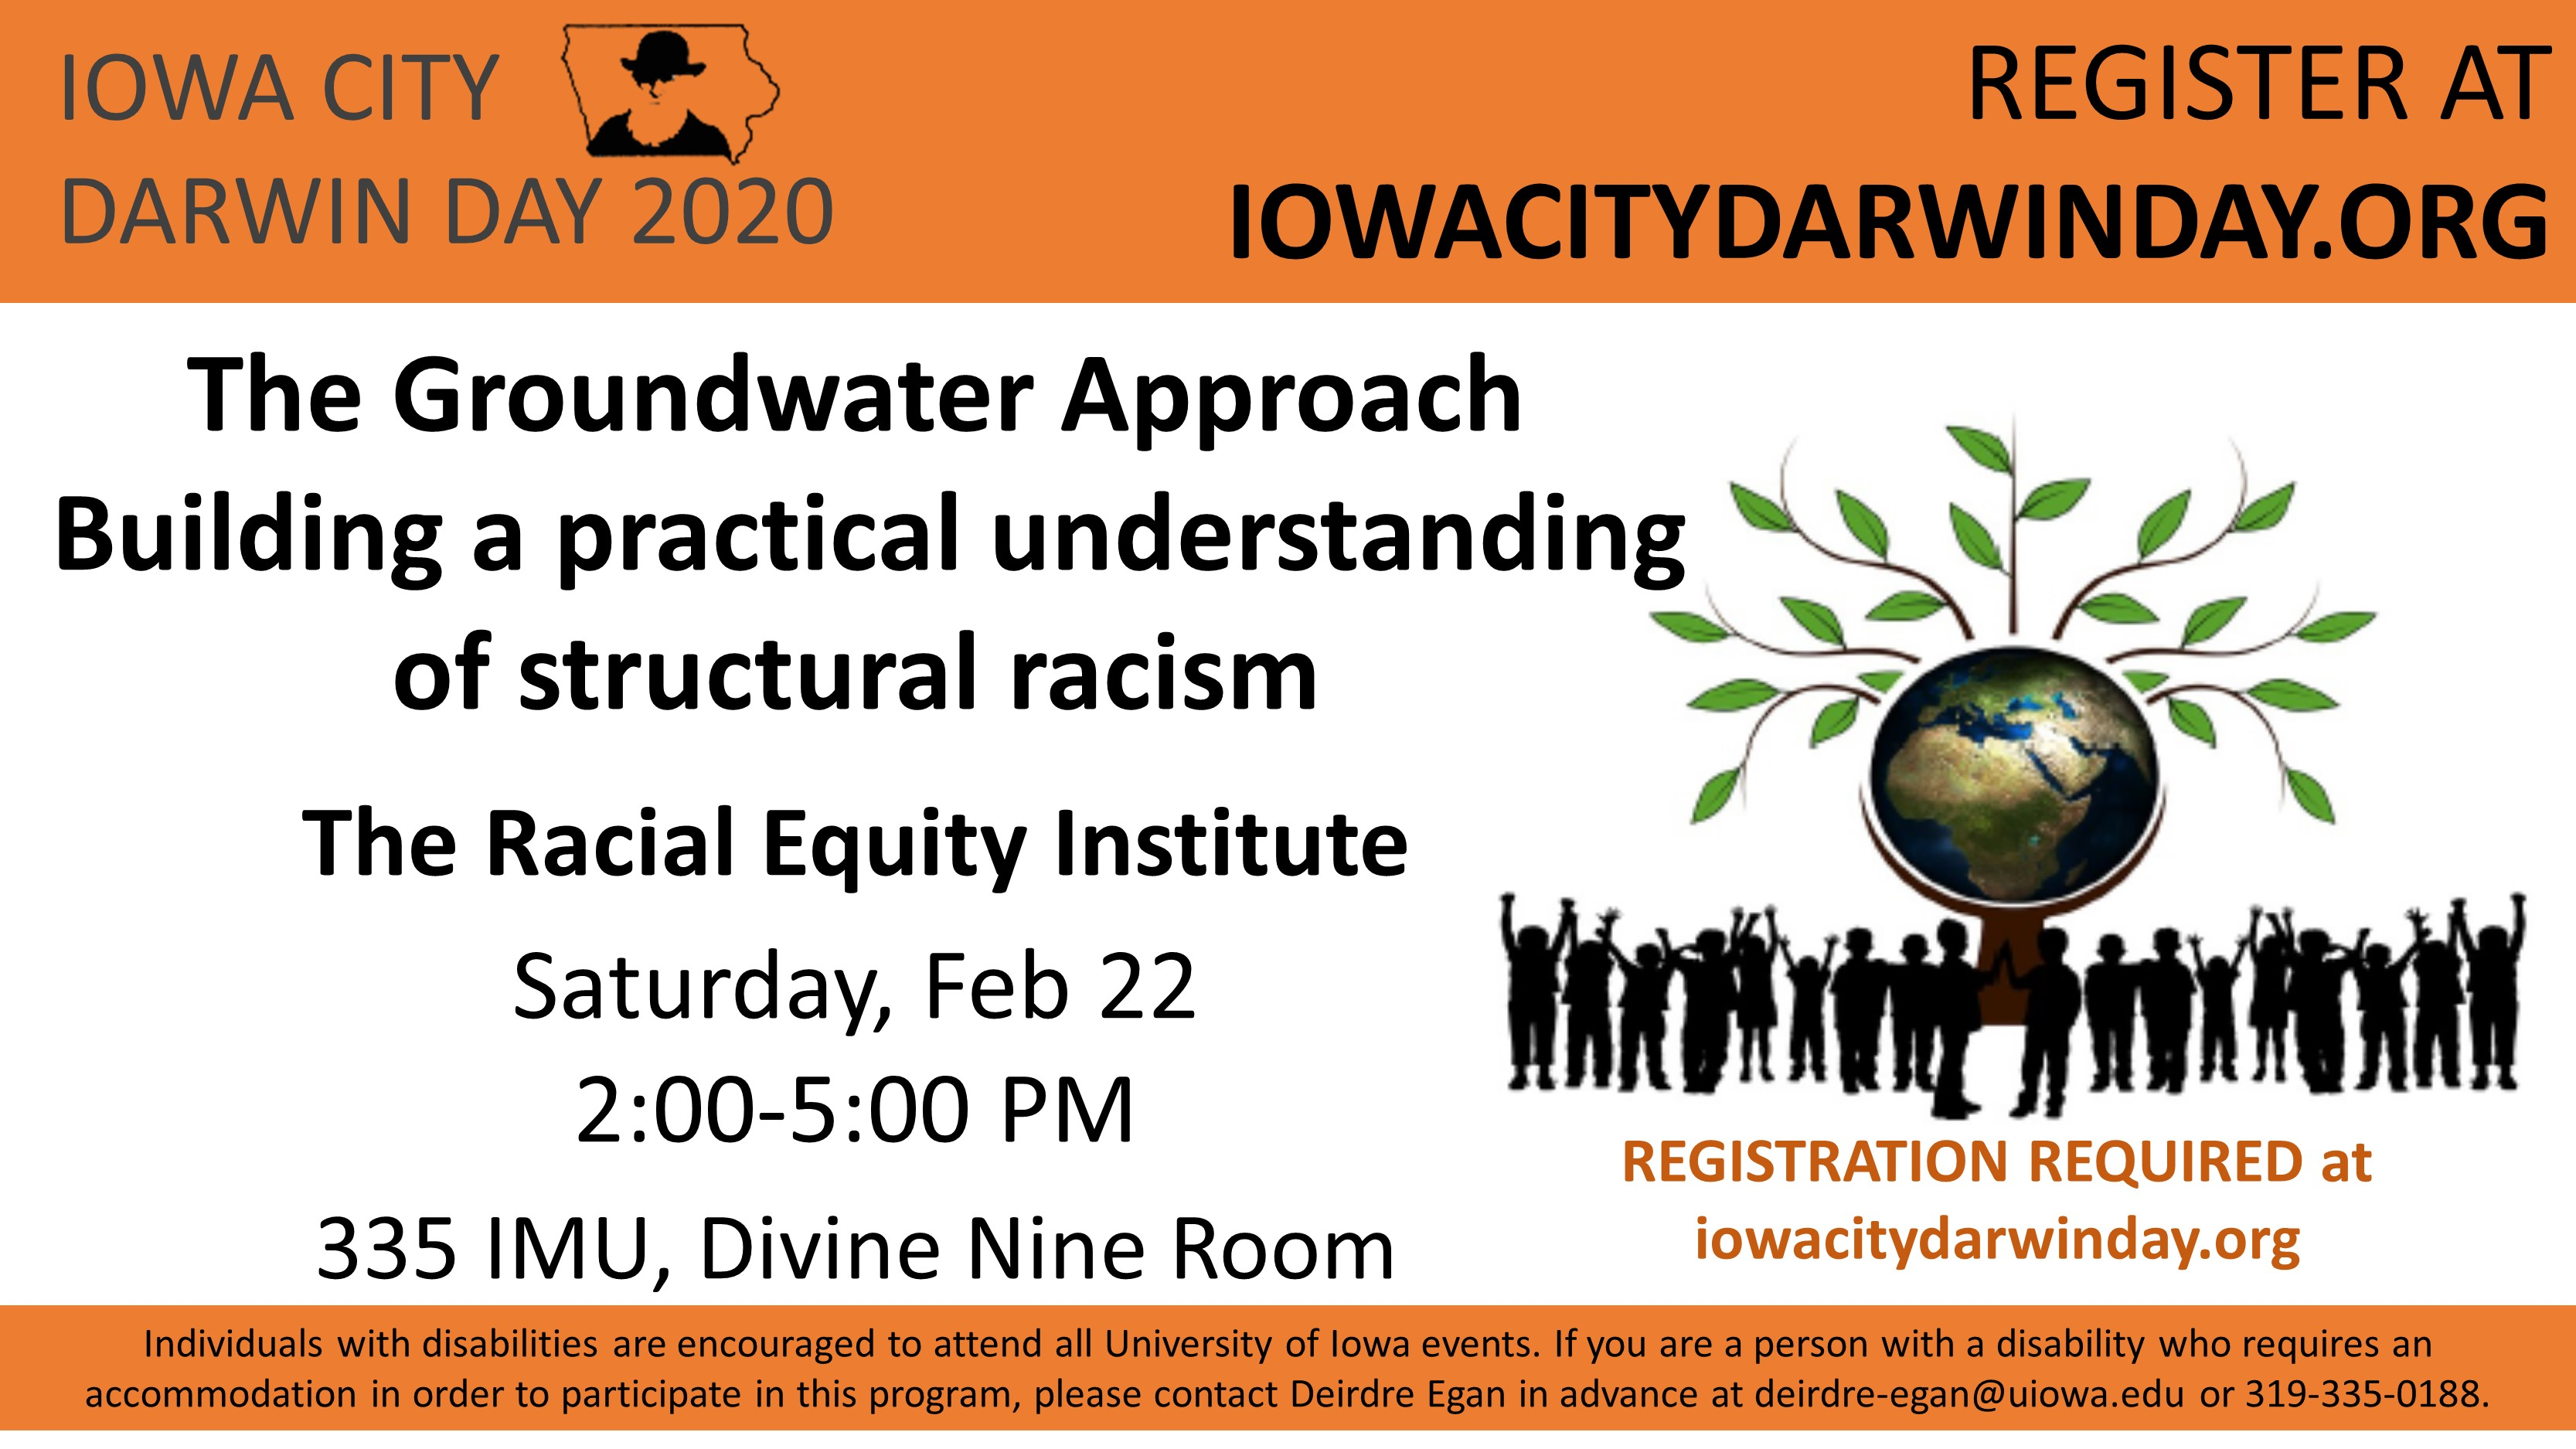 The Racial Equity Institute's Groundwater Approach: Building a practical understanding of structural racism promotional image